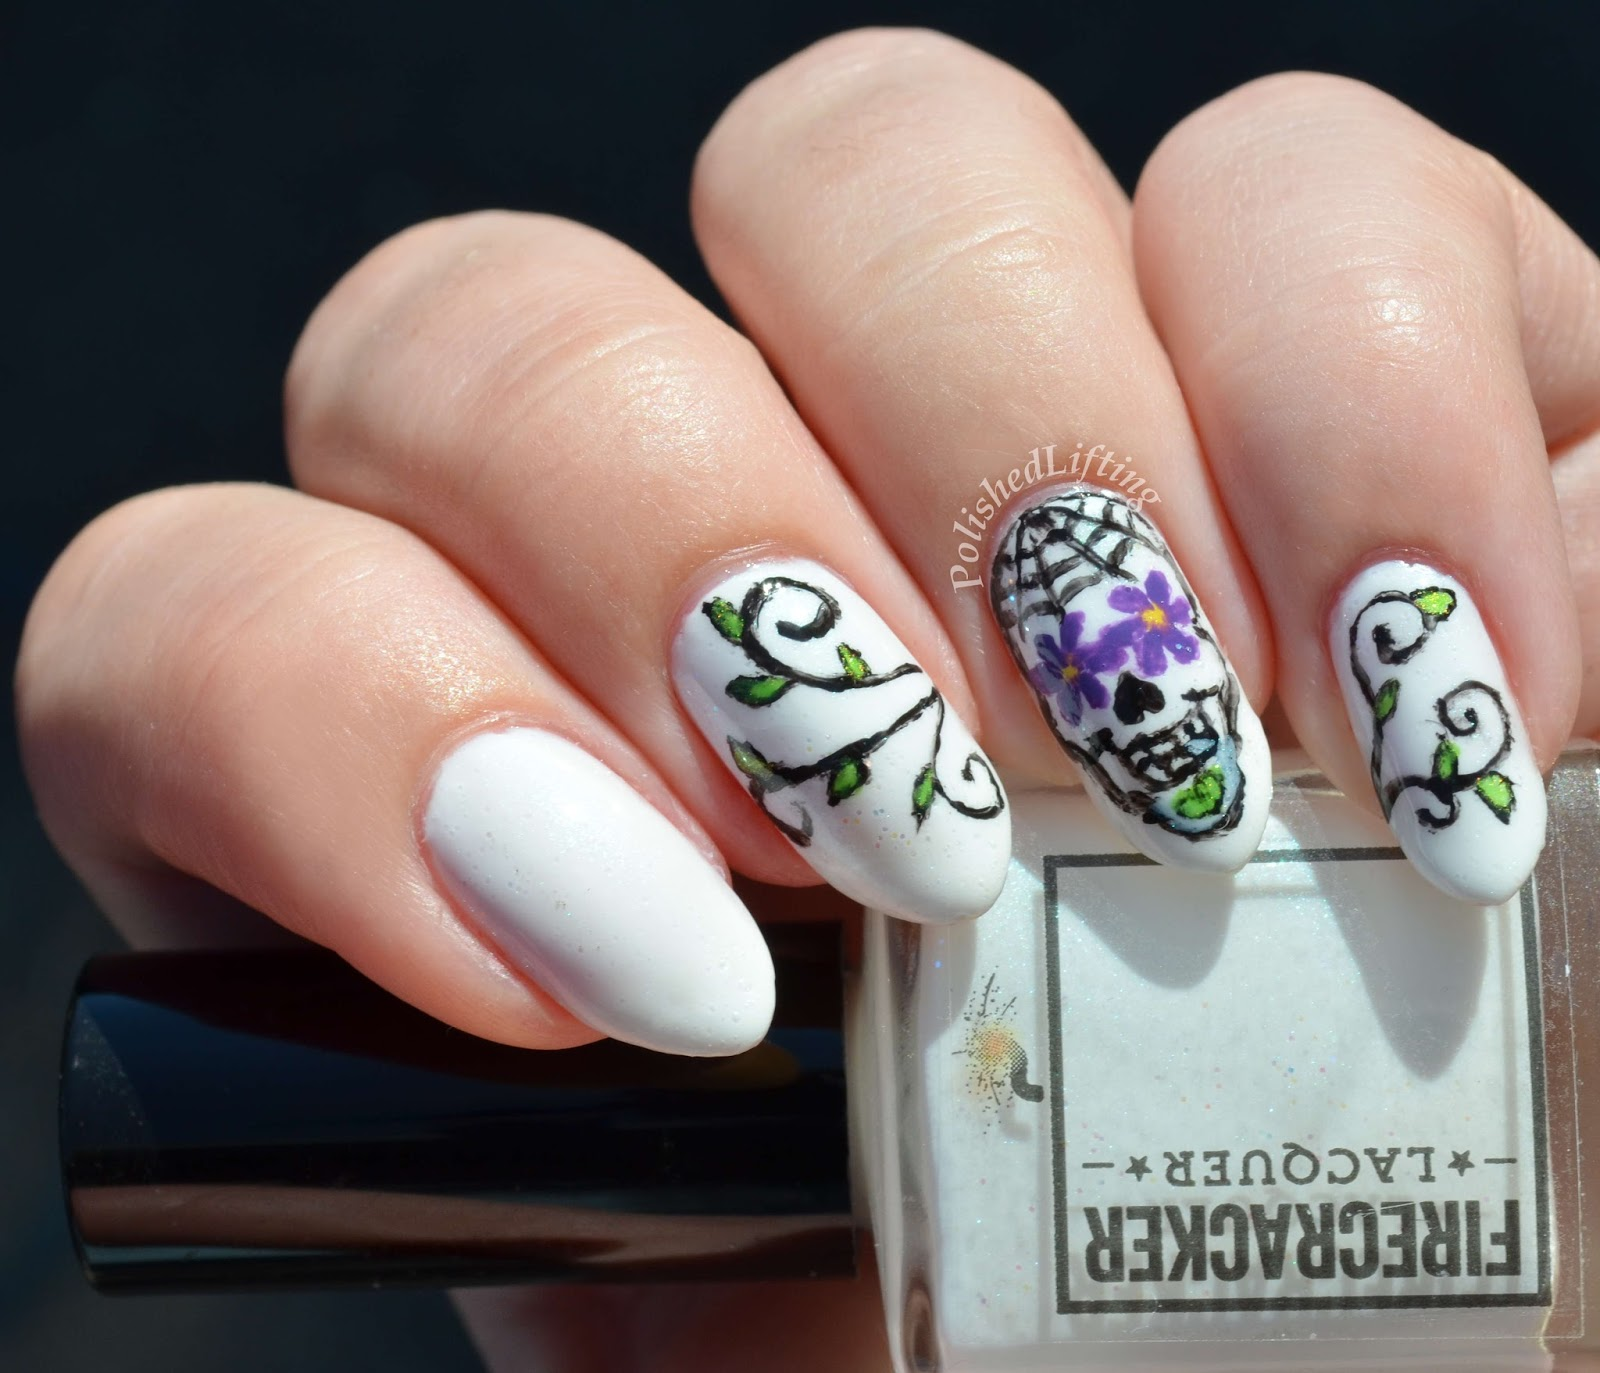 Polished Lifting: Dia de los Muertos Calavera Twin Mani